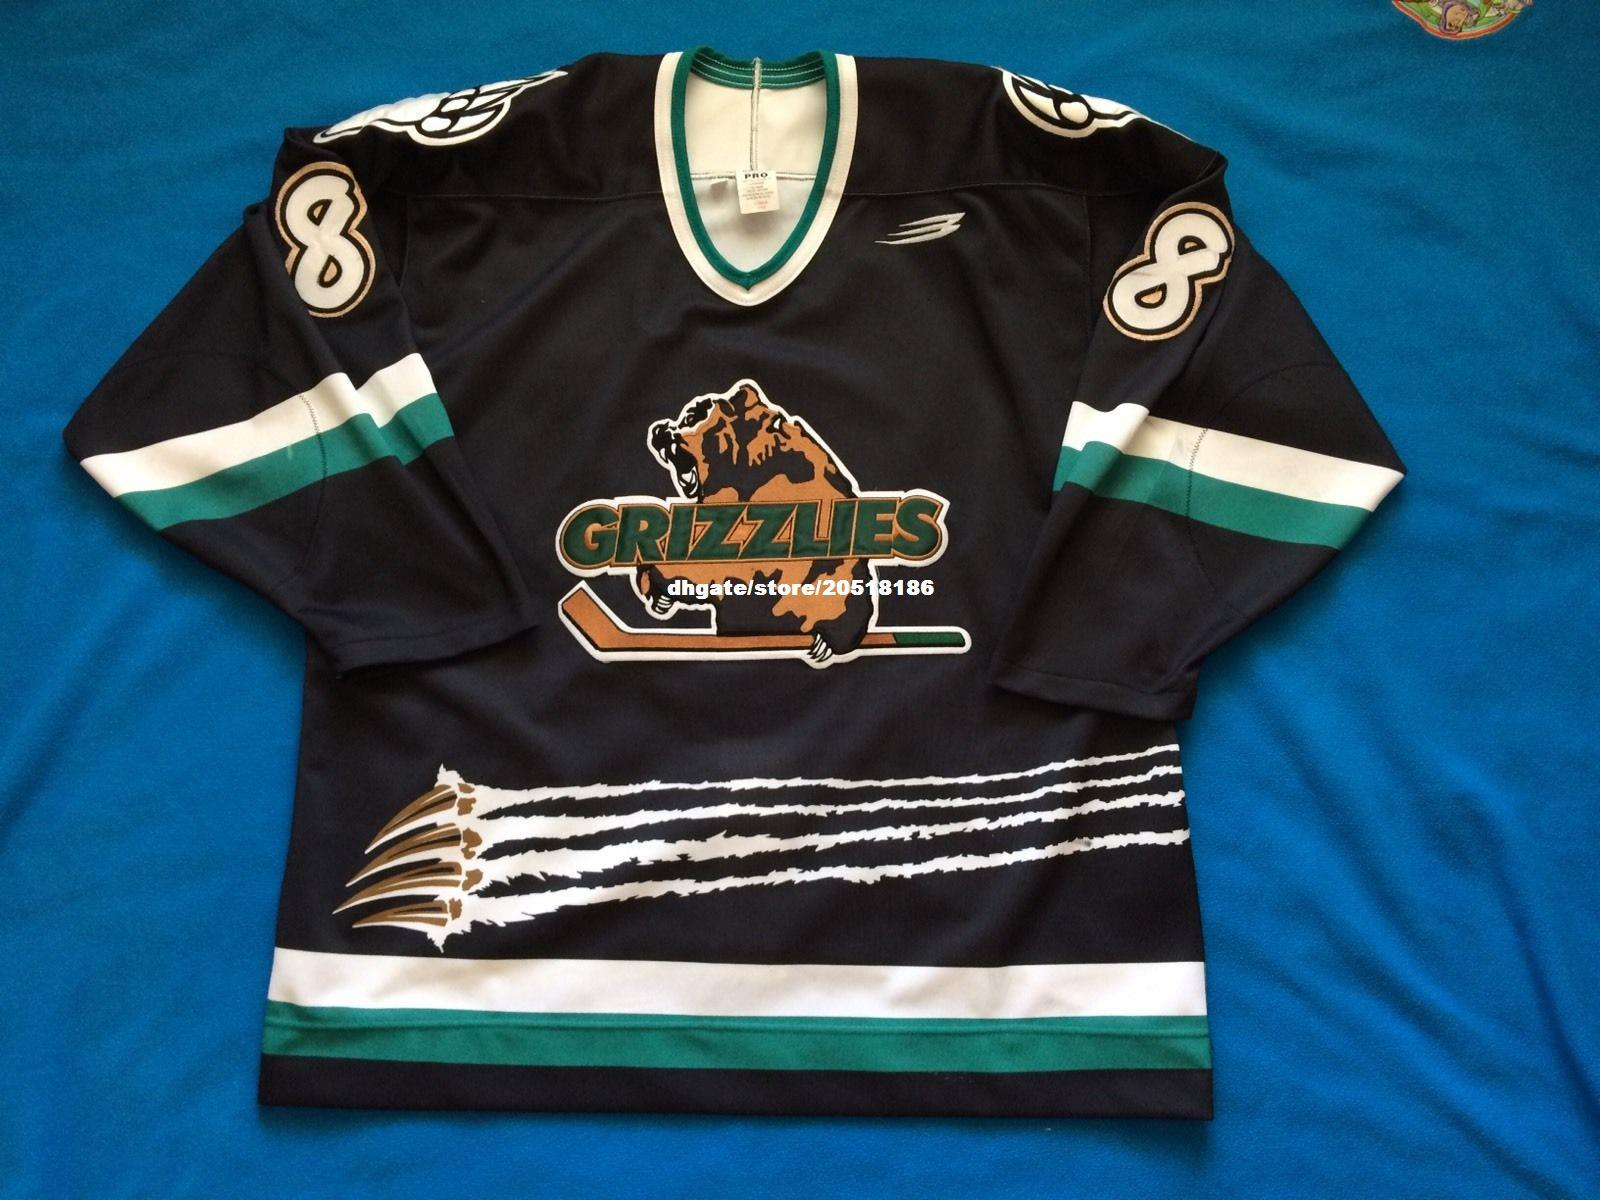 2019 Cheap Custom Utah Grizzlies Game Used Jerseys IHL Bauer Ultrafil Rare  Jeff Sharples Stitched Men S Hockey Jersey From Nfljersey1 145115810ce